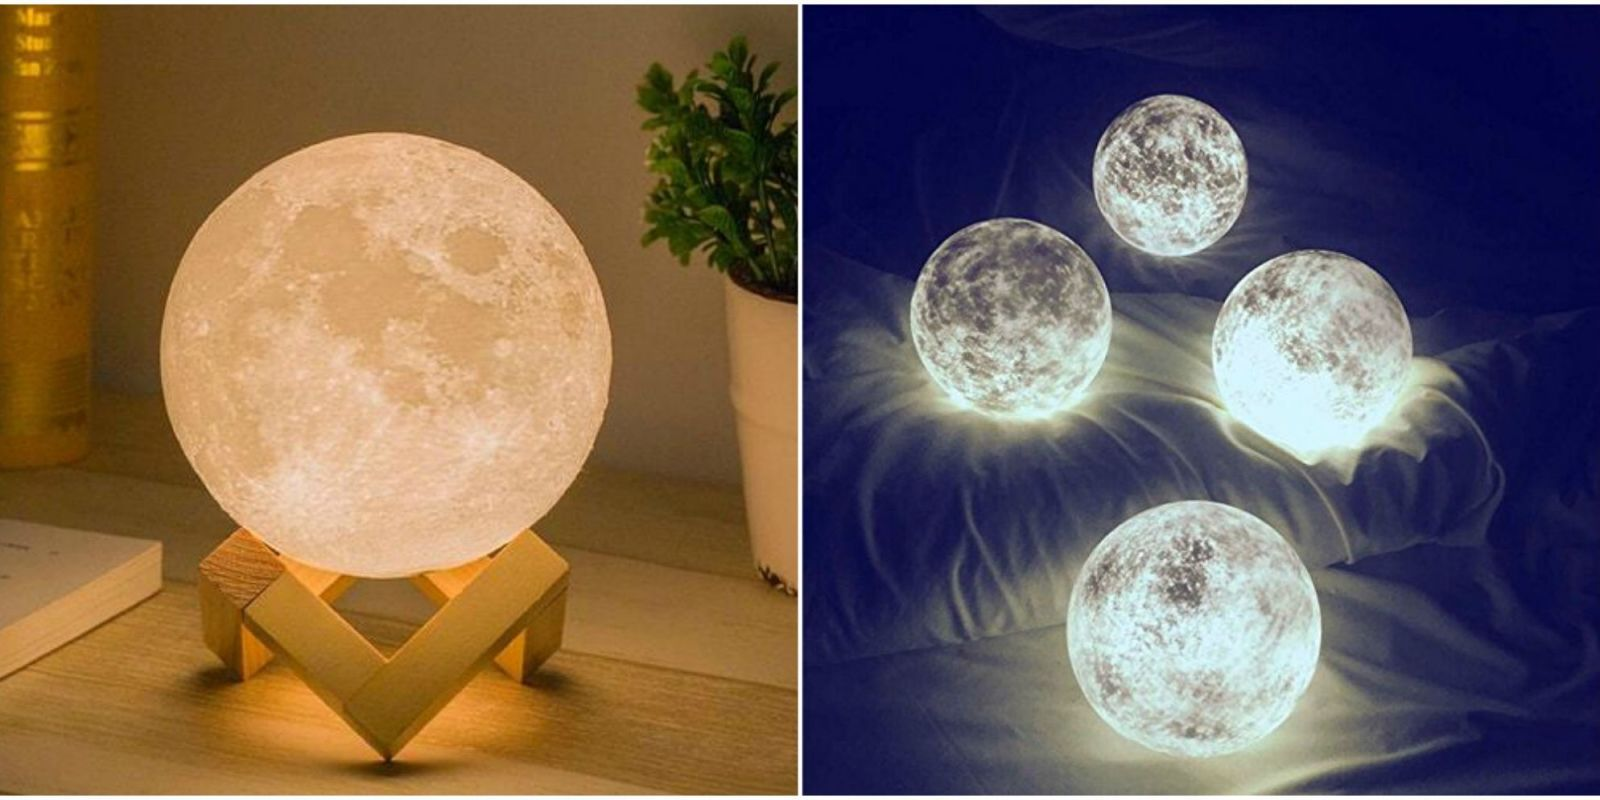 Moon Lamps Sale  Lunar Moon Lights Amazon Prime Day 2019